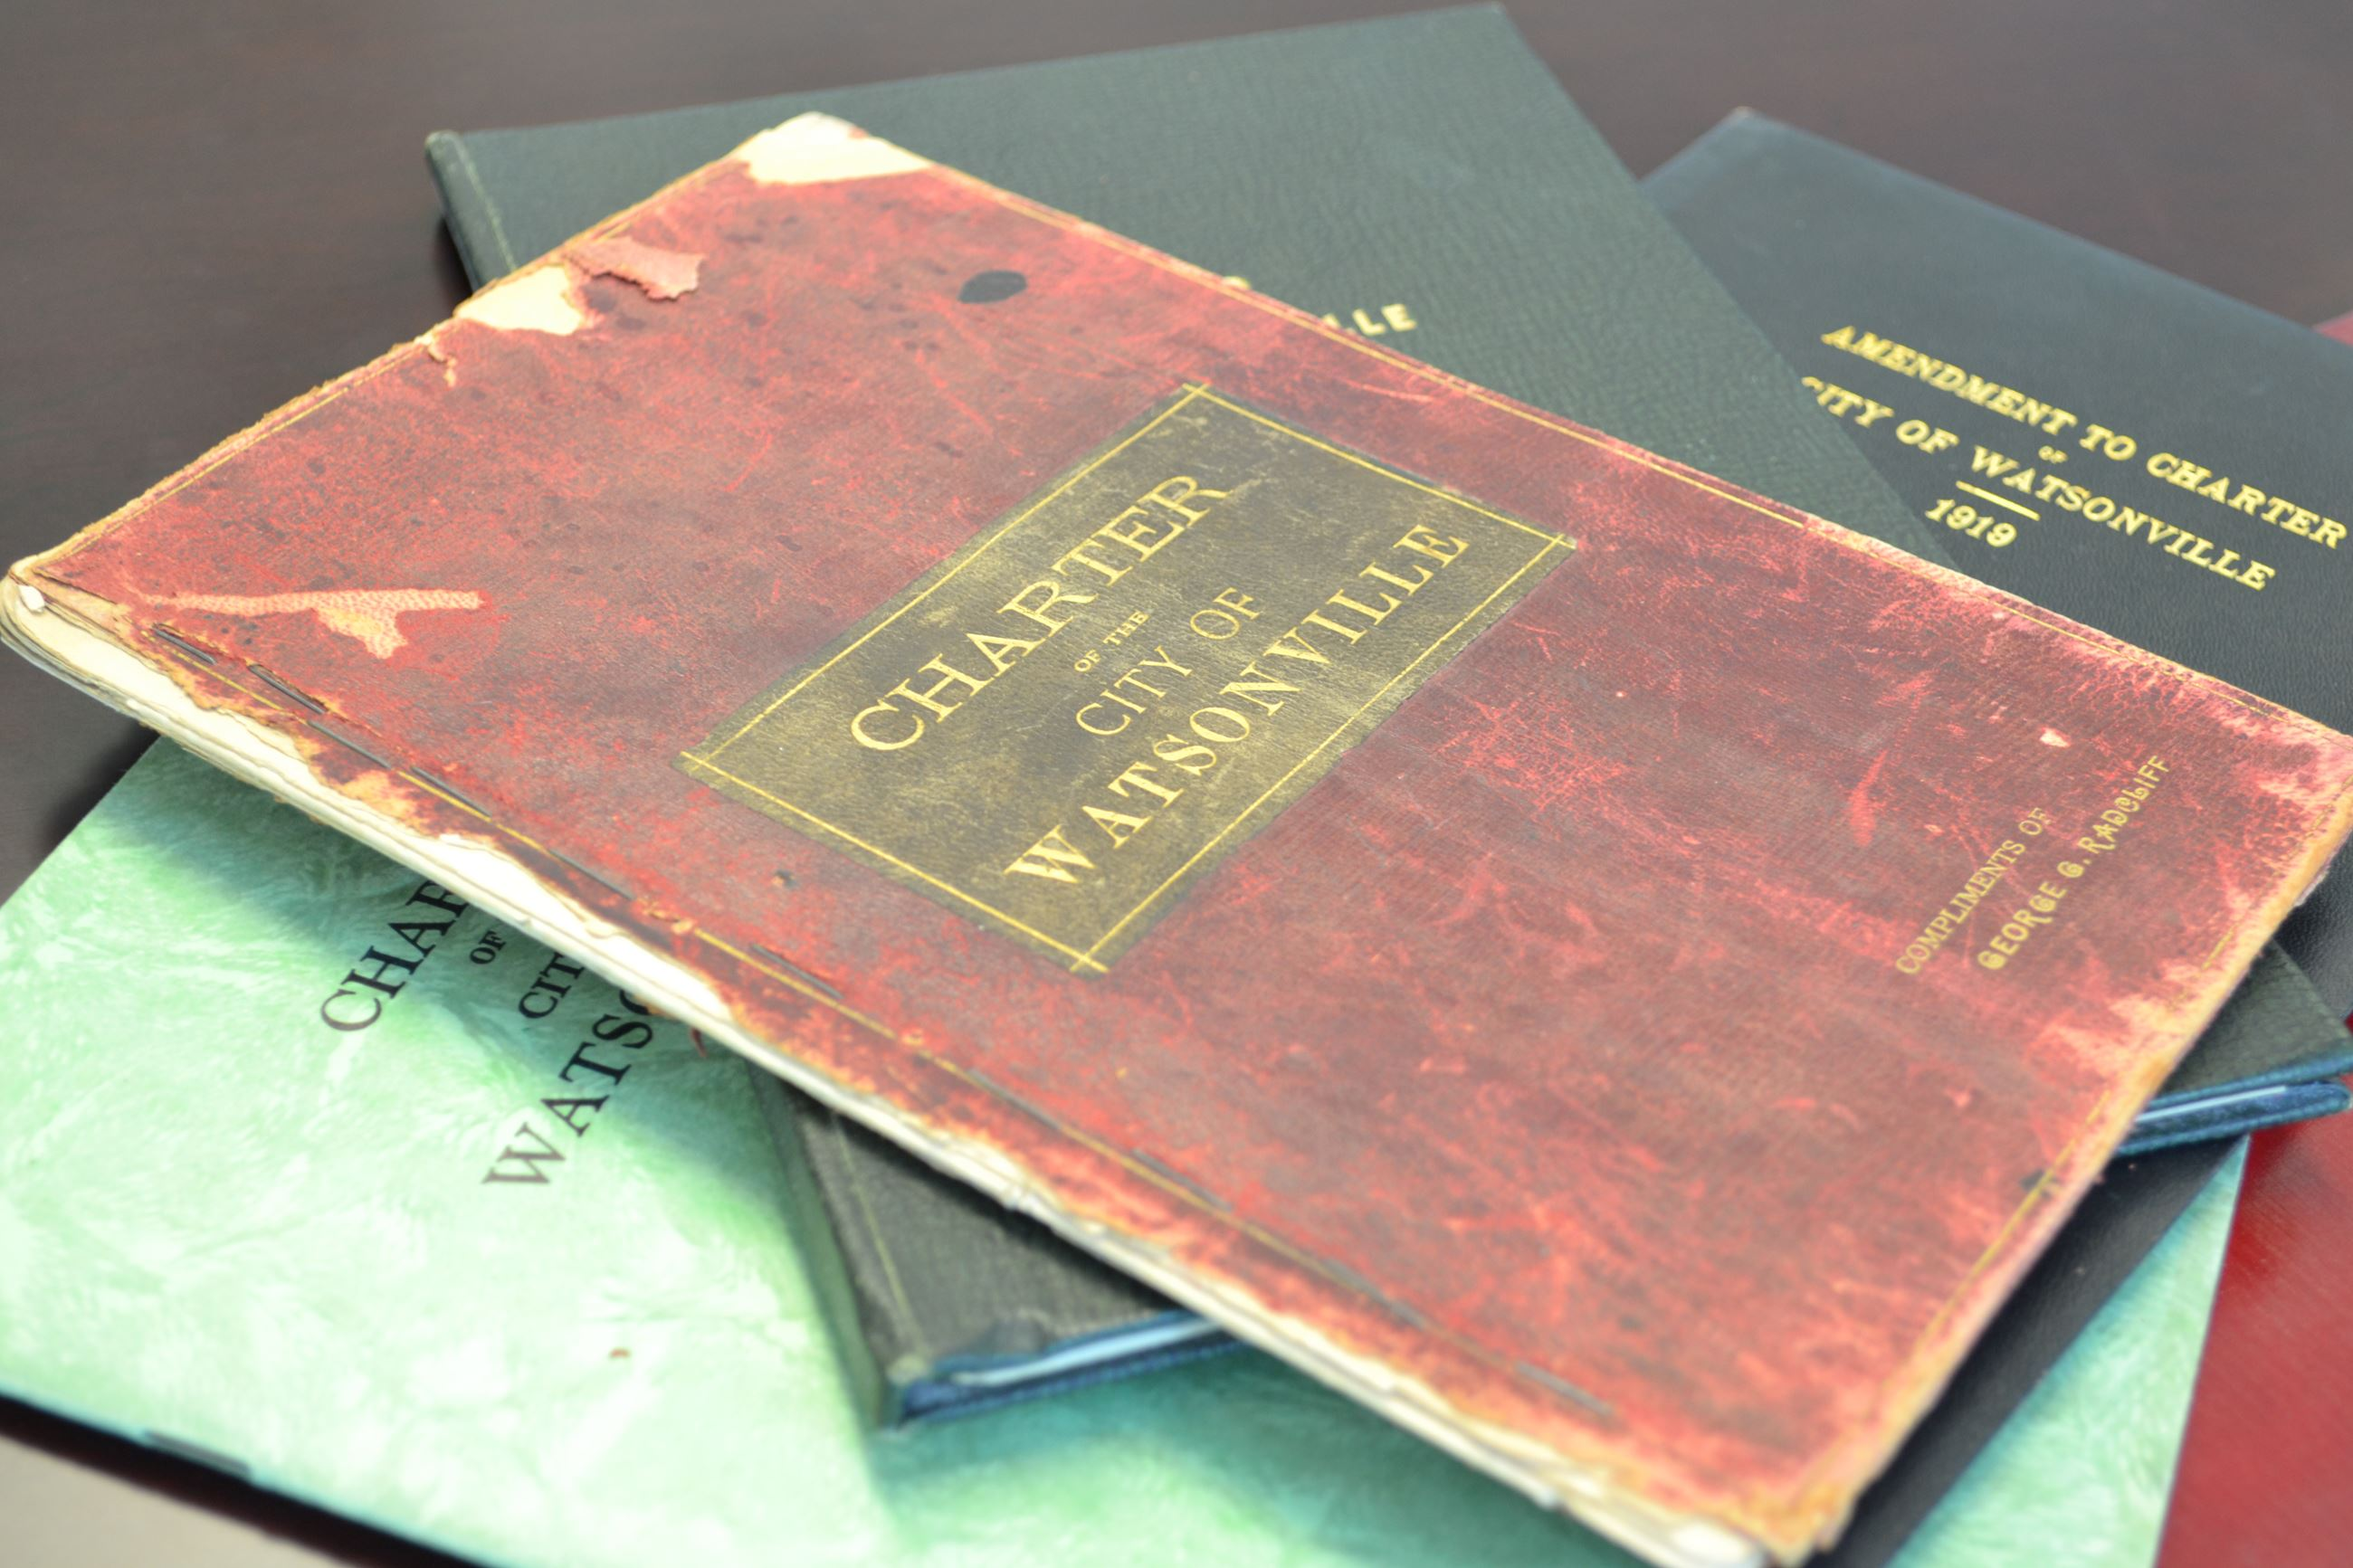 A binder containing the Watsonville City Charter.